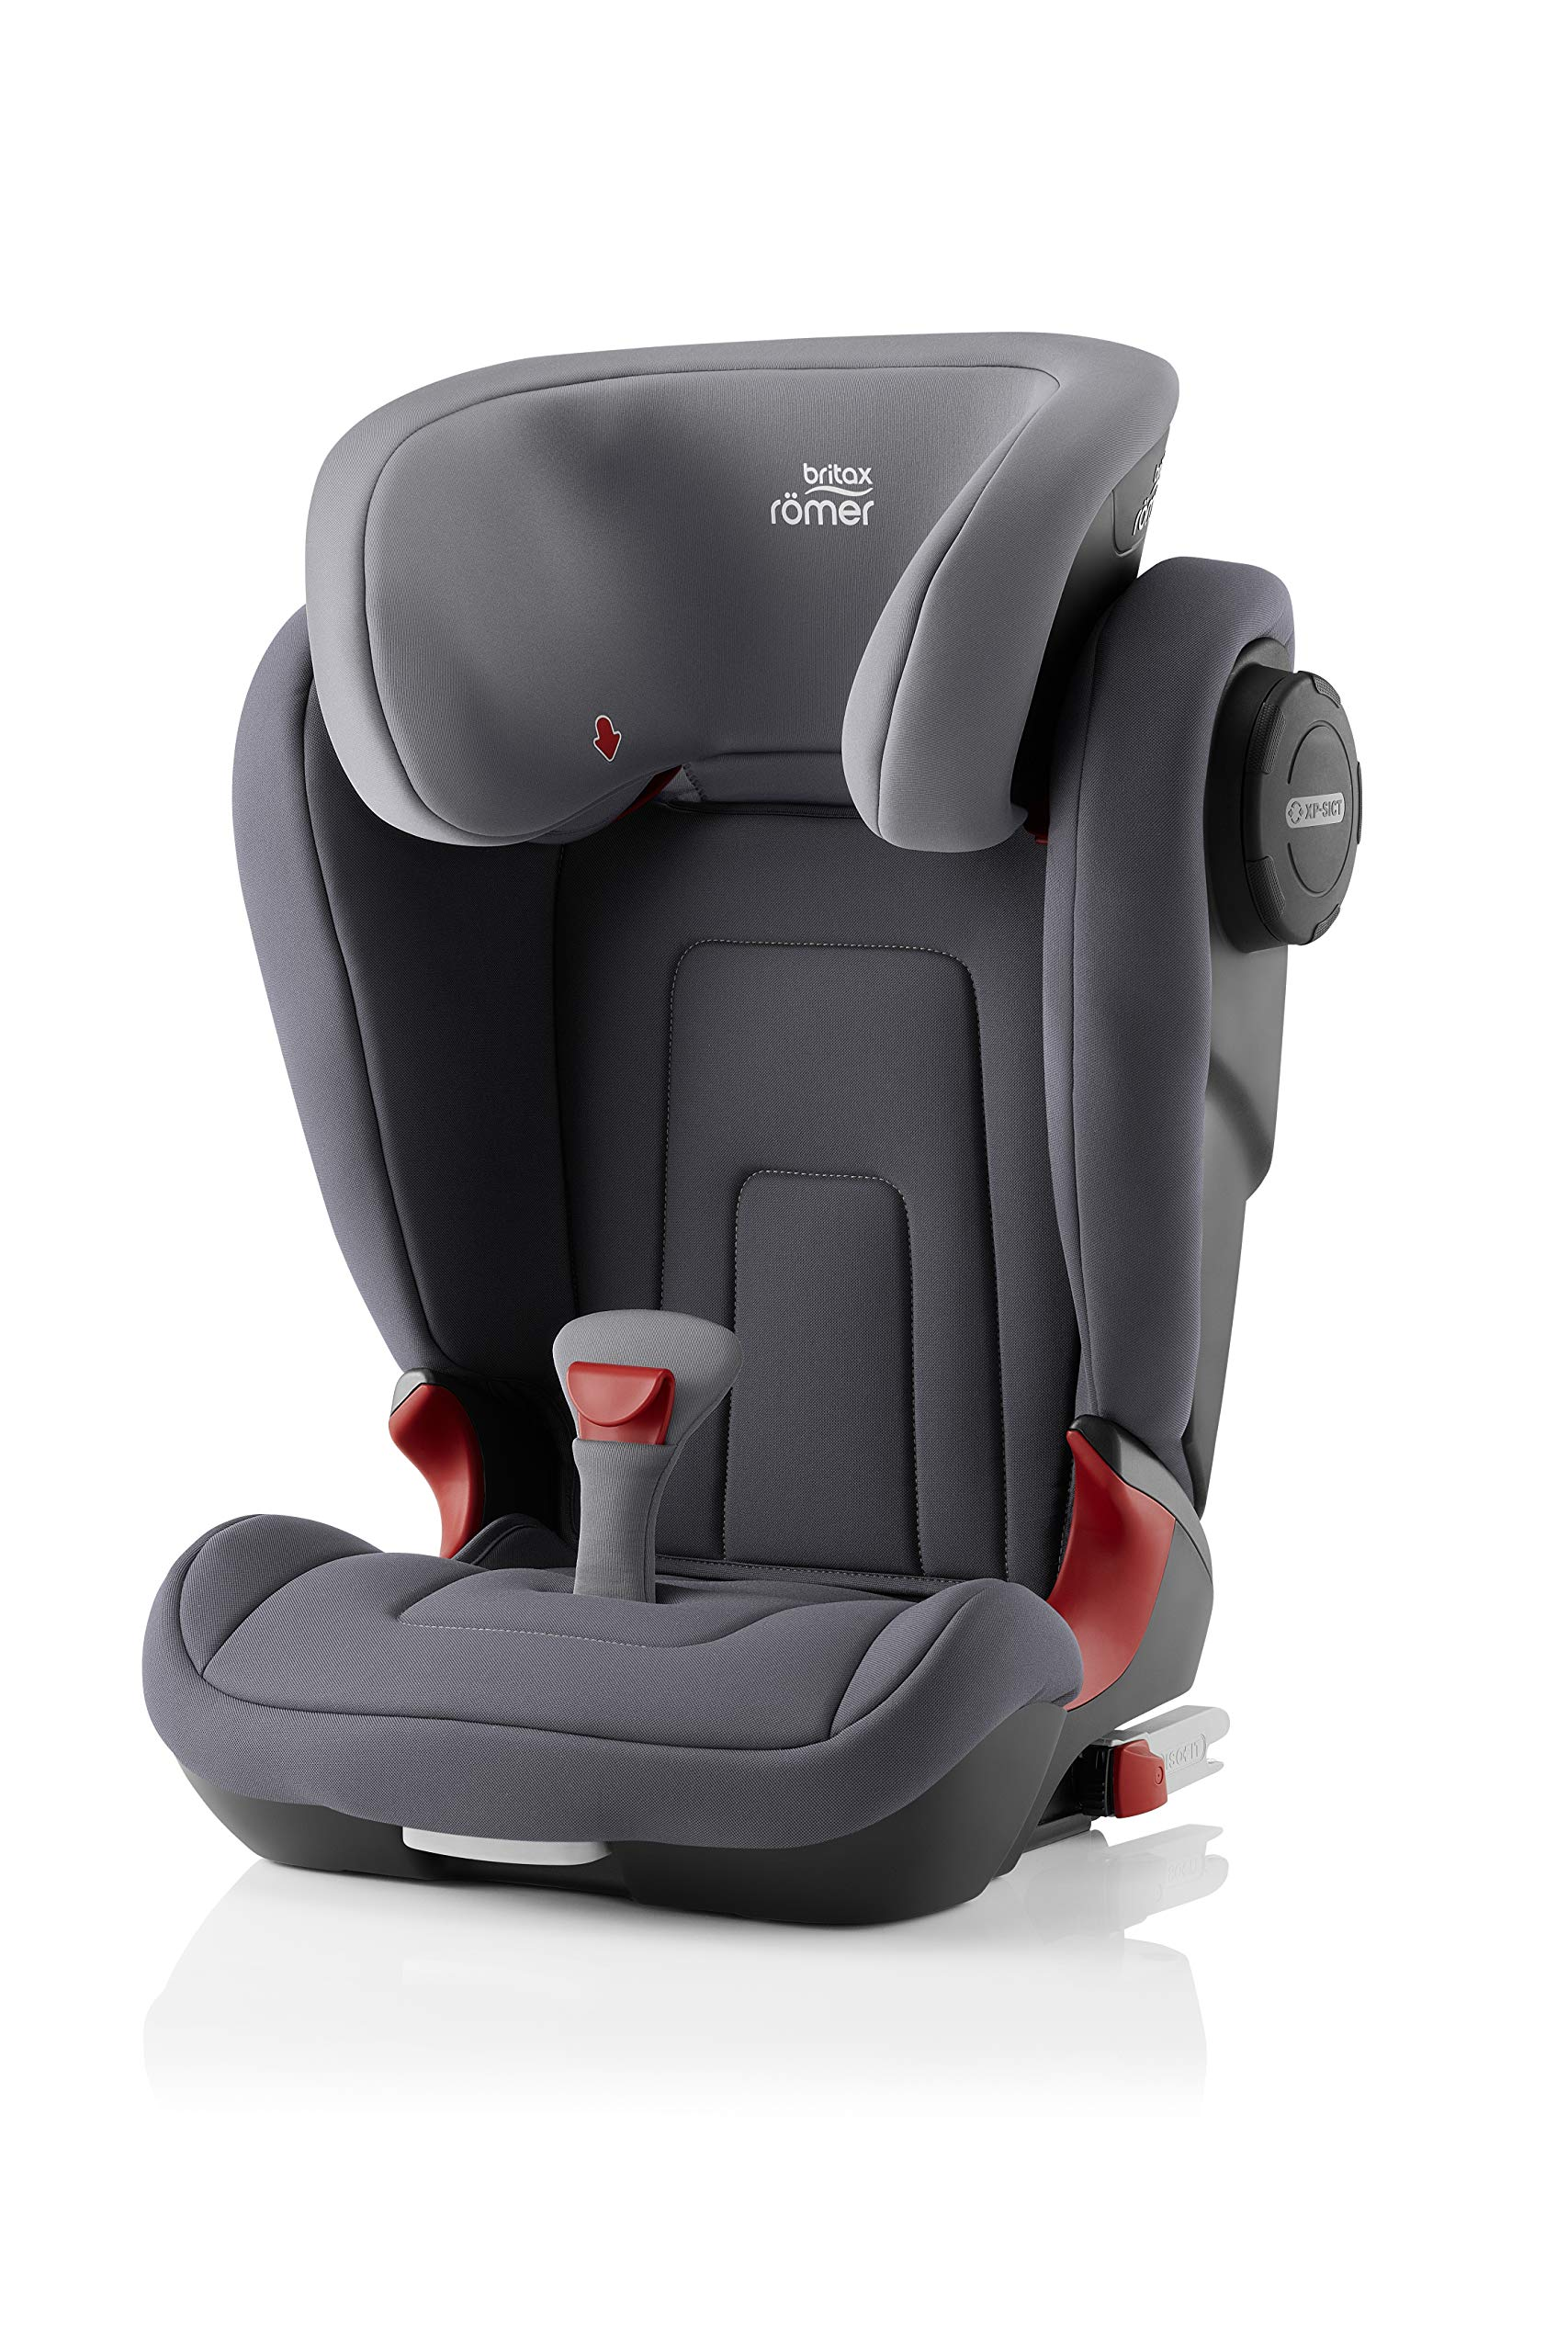 Britax Römer KIDFIX² S Group 2-3 (15-36kg) Car Seat - Storm Grey  Advanced side impact protection - sict offers superior protection to your child in the event of a side collision. reducing impact forces by minimising the distance between the car and the car seat. Secure guard - helps to protect your child's delicate abdominal area by adding an extra - a 4th - contact point to the 3-point seat belt. High back booster - protects your child in 3 ways: provides head to hip protection; belt guides provide correct positioning of the seat belt and the padded headrest provides safety and comfort. 1